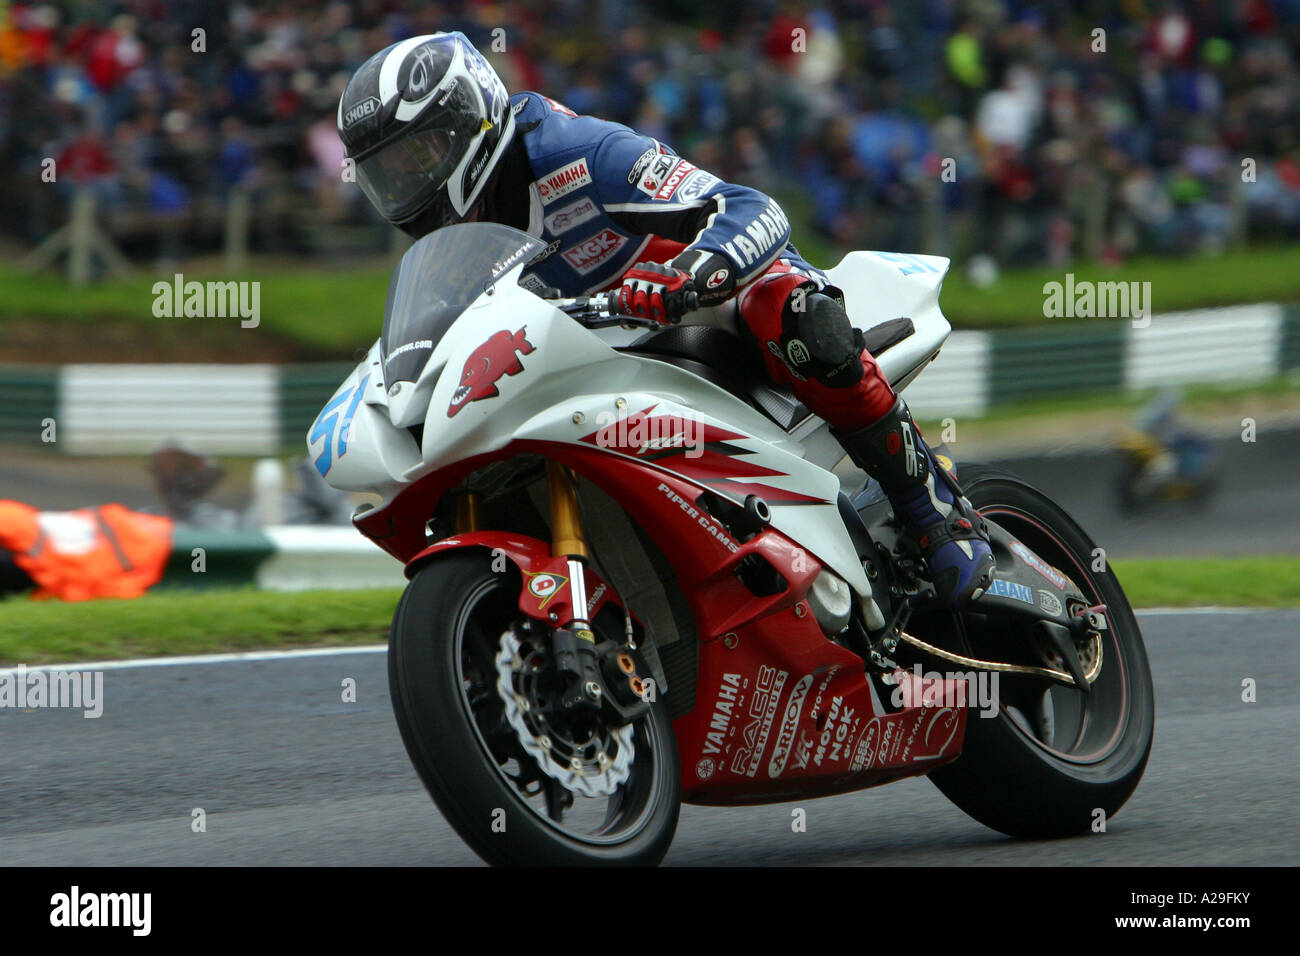 Simon Andrews on his Yamaha R6 in the British Supersport Championship - Stock Image